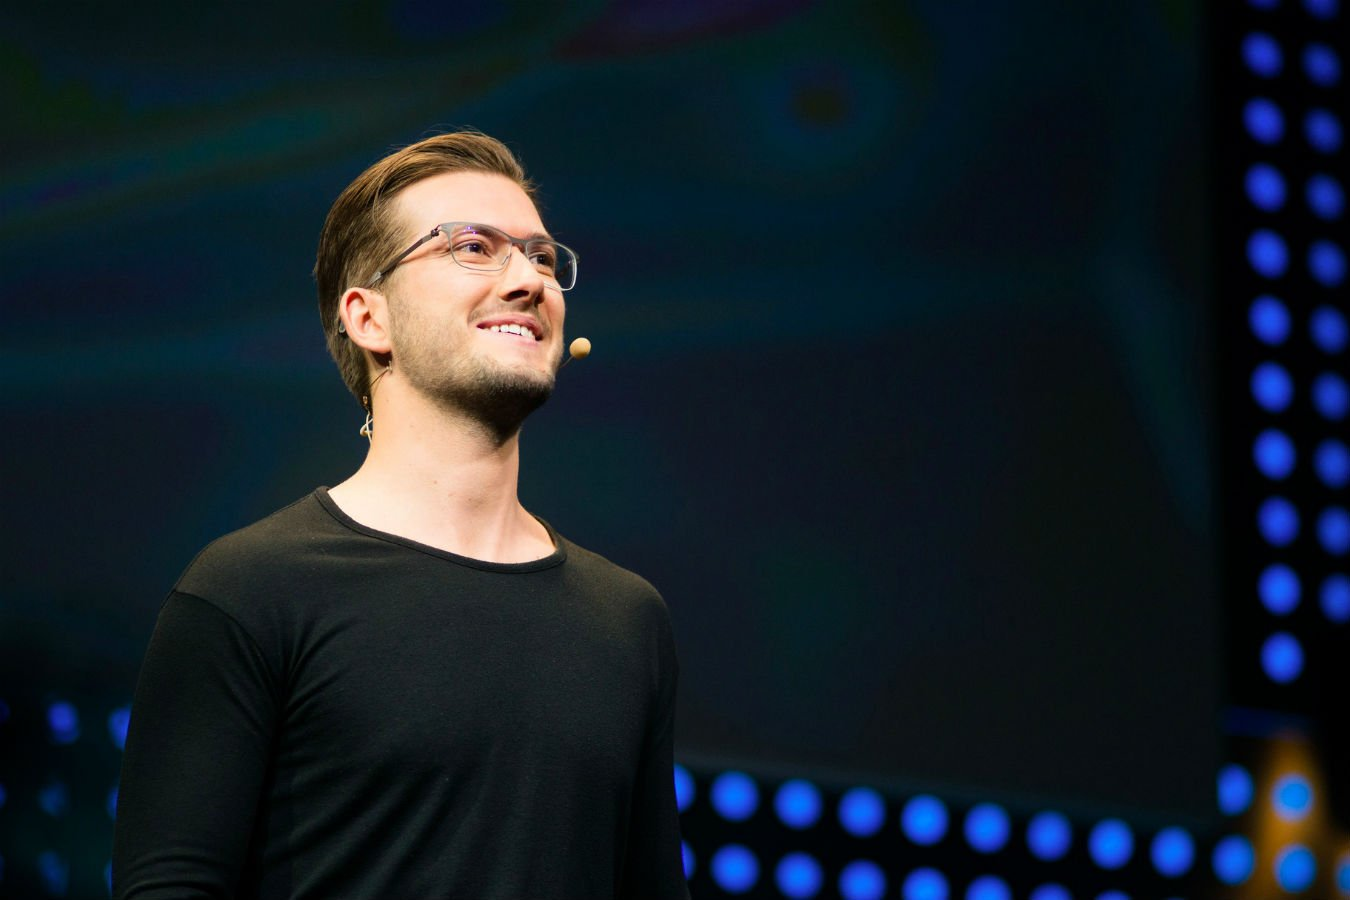 SoundCloud CEO answer the audience's question at tech conference